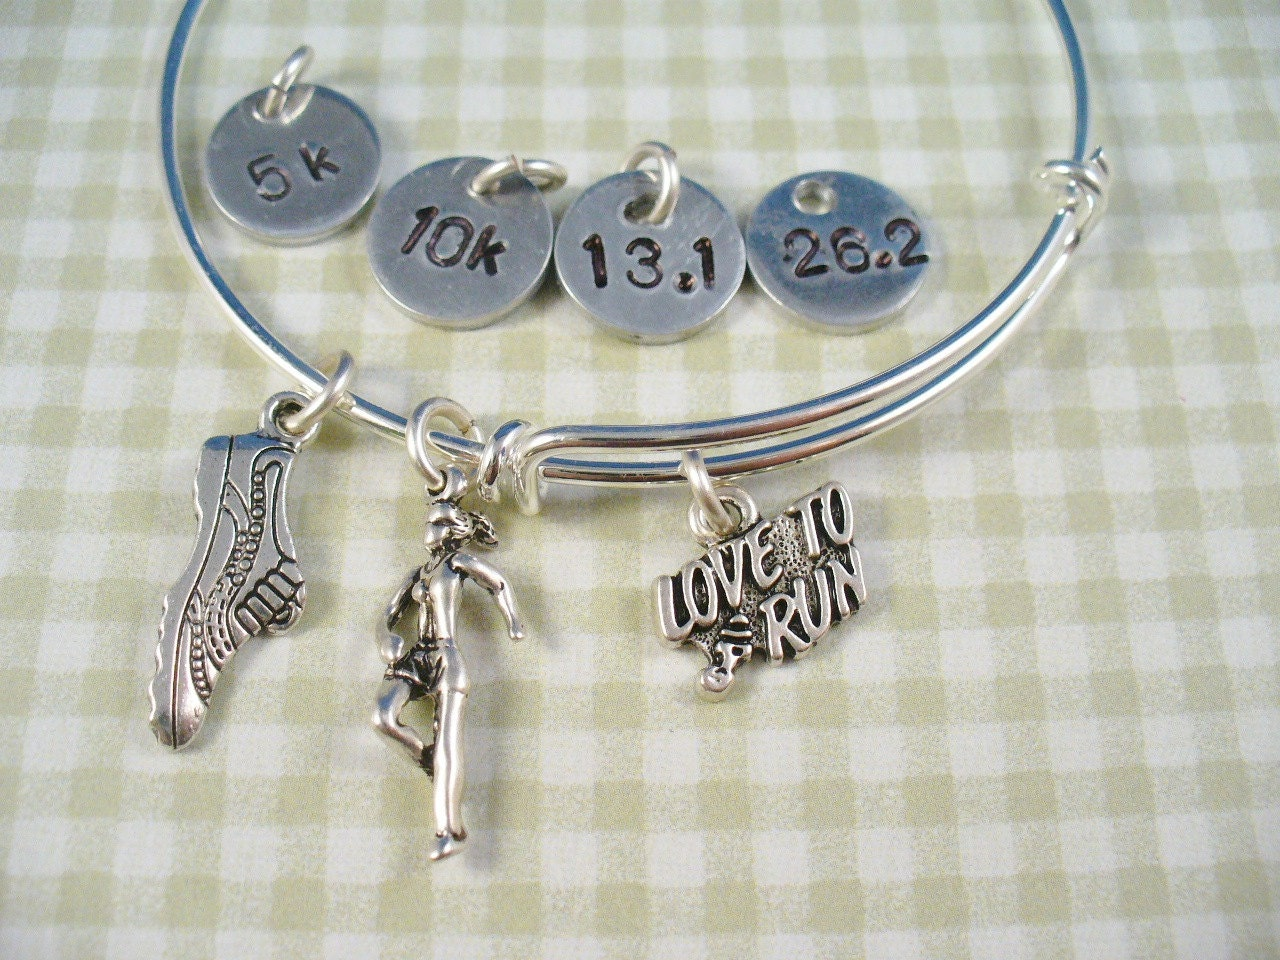 steel bangles bracelet initials bracelets products bangle monogram stainless childrens img mom s children with charm